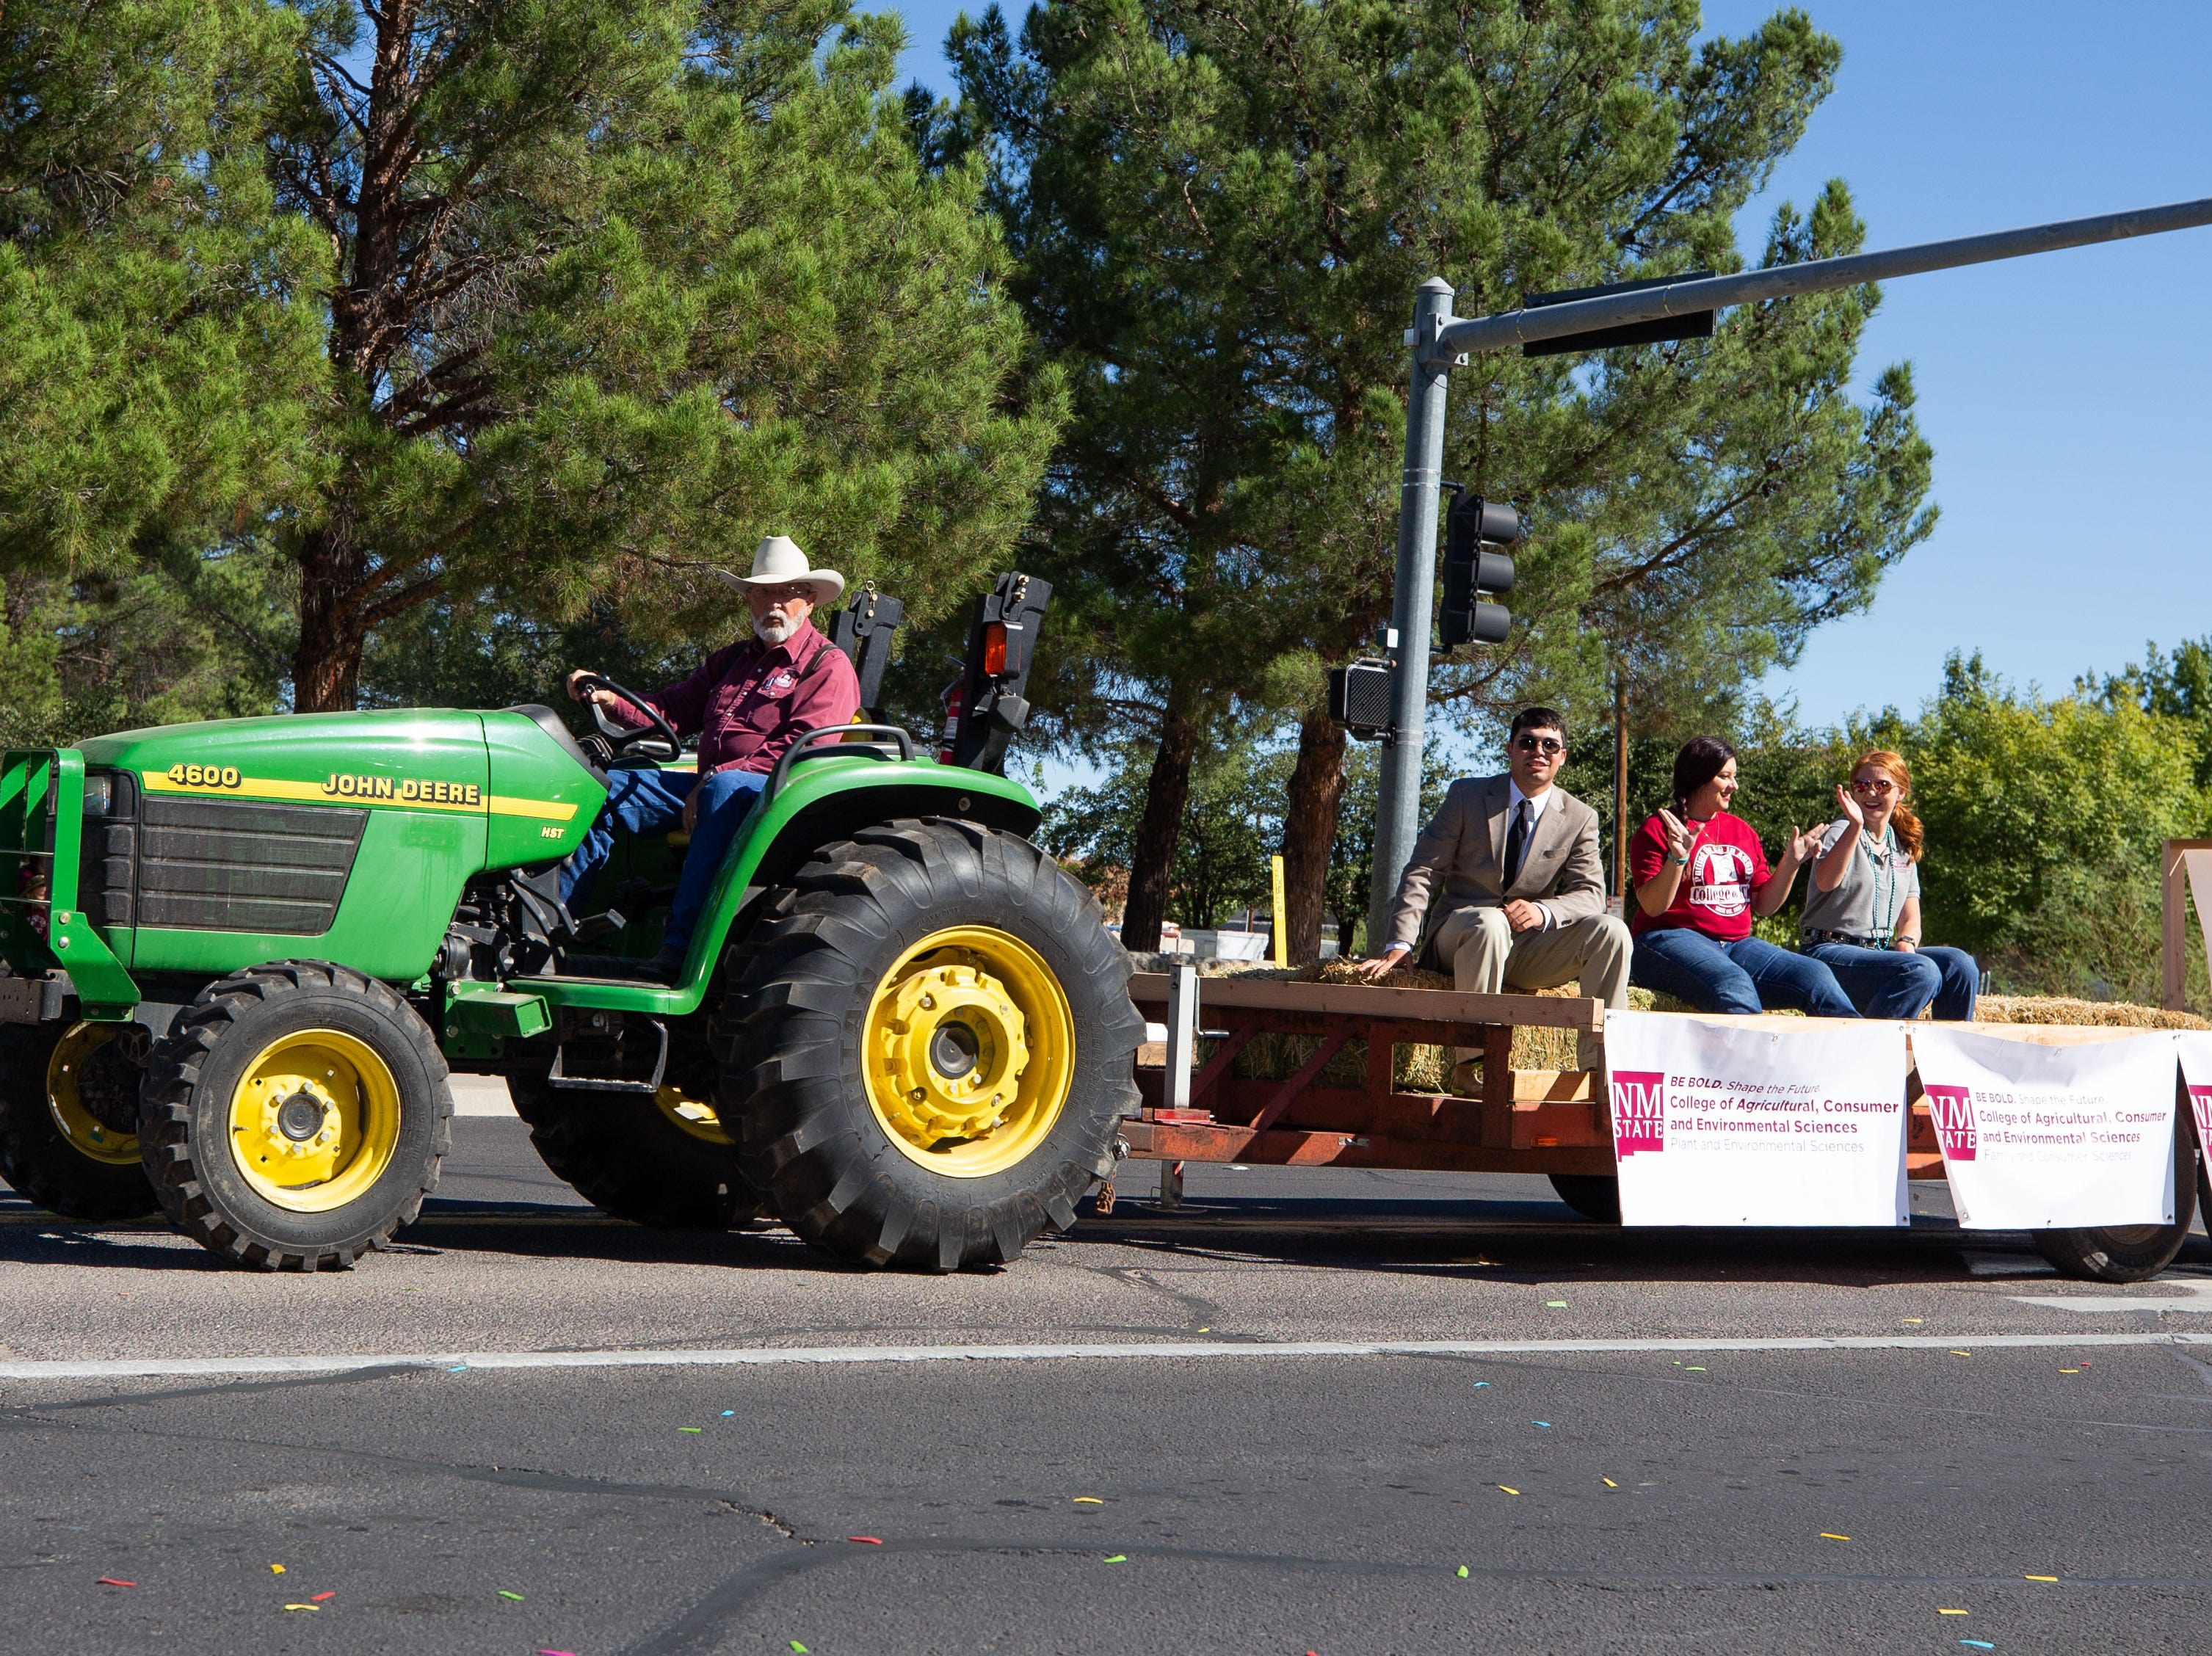 College of Agriculture, Consumer and Environmental Sciences float pulled by former Dean Jerry Schickedanz on a John Deere tractor at the NMSU Homecoming Parade on October 6, 2018.